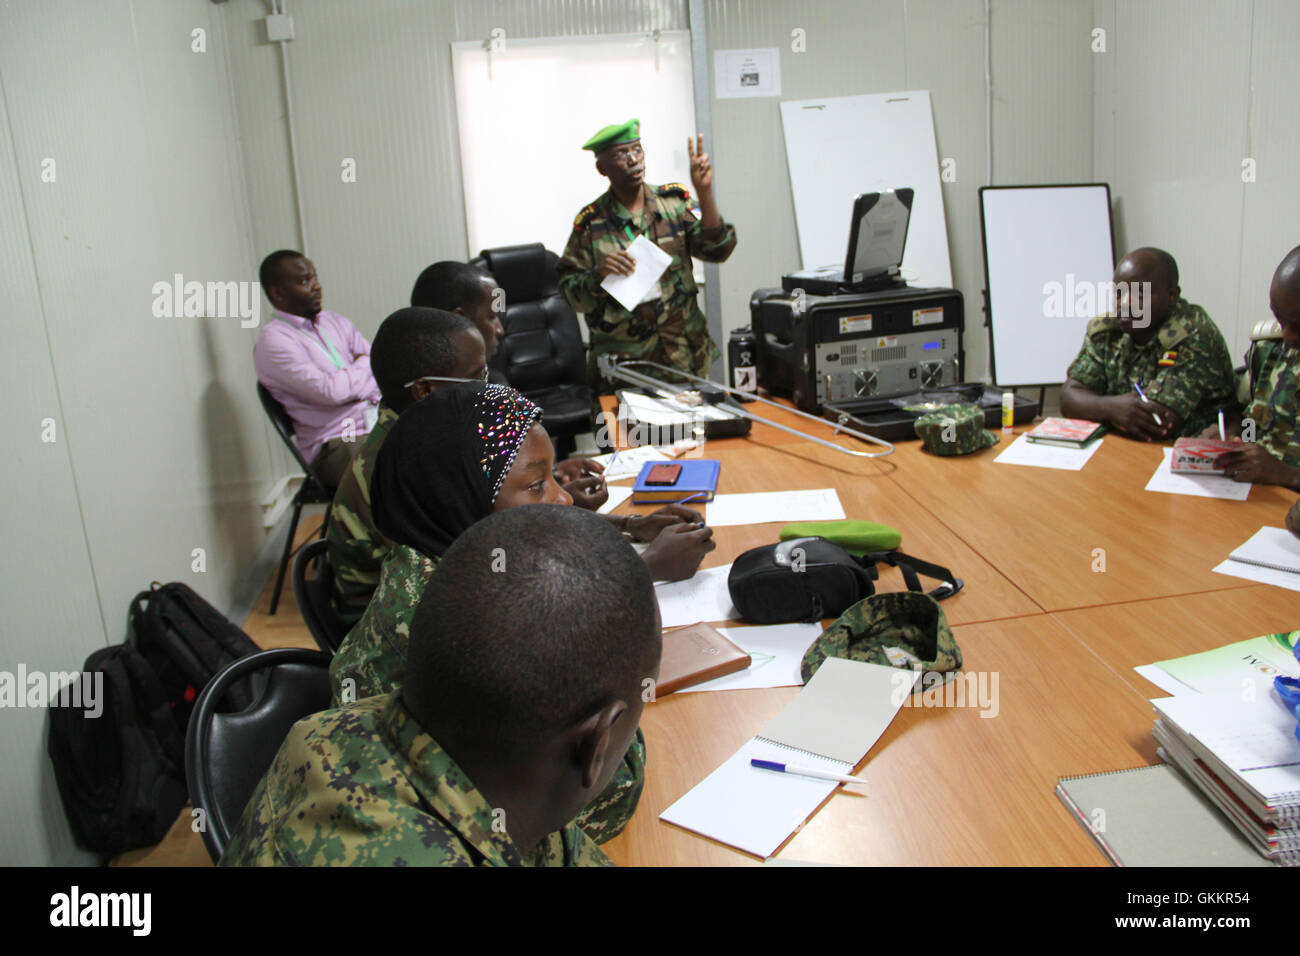 The AMISOM Military Chief of Staff Col. Daher Aden speaks during a radio communication training for AMISOM Public Stock Photo